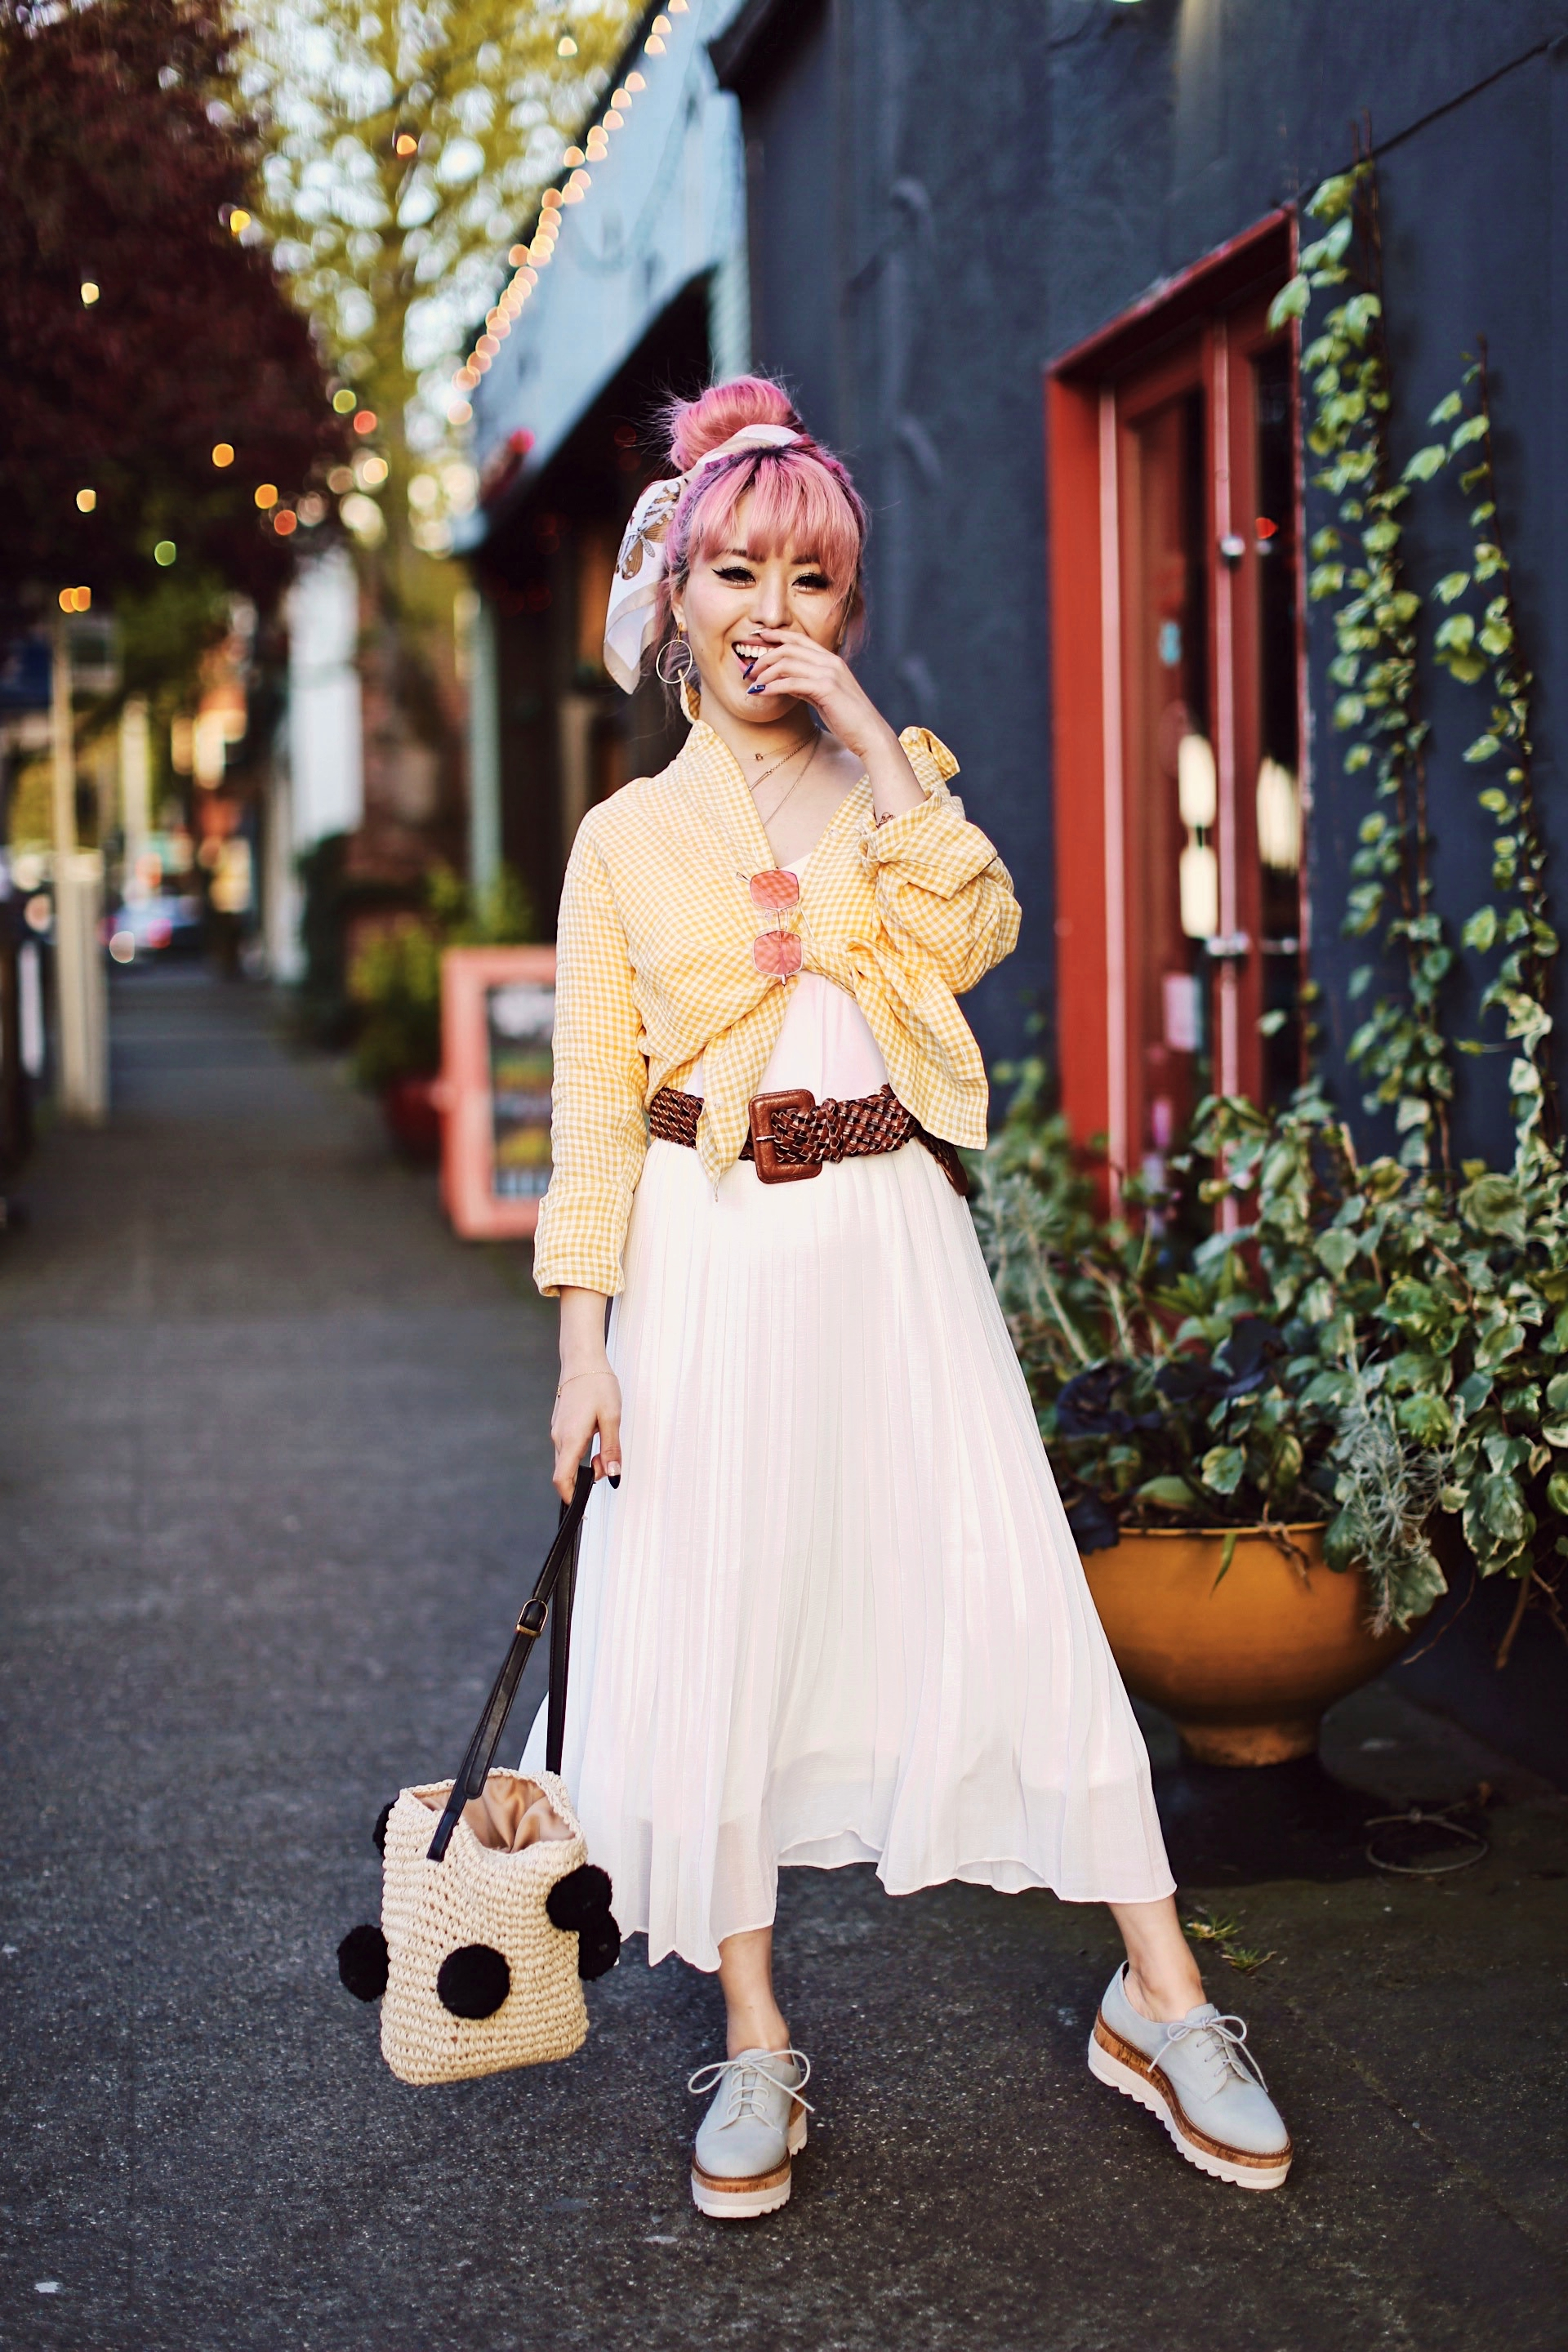 Uniqlo yellow Linen gingham shirt-Uniqlo White pleated chiffon midi skirt-Uniqlo Airism brat-pink tinted sunglasses ZERO UV-She in Pom pom Straw bucket bag-Vintage scarf bun hair style-Steve Madden Belt-Jane and the shoe denim oxford platforms-Aika's Love Closet-seattle fashion style blogger-Japanese-pink hair-smiling-spring fashion 3